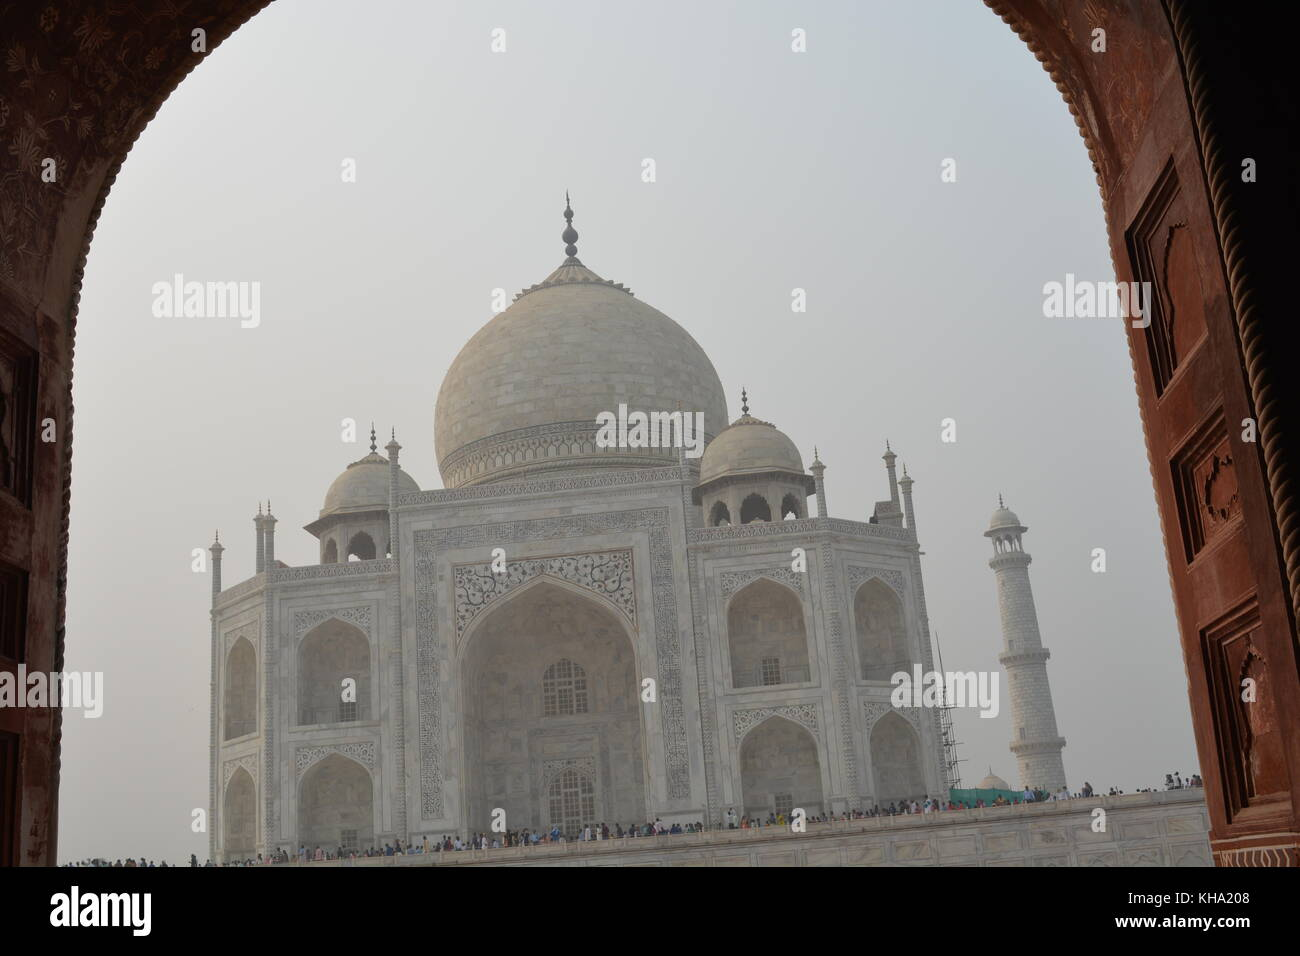 Taj Mahal in Morning view in Agra, India - Stock Image